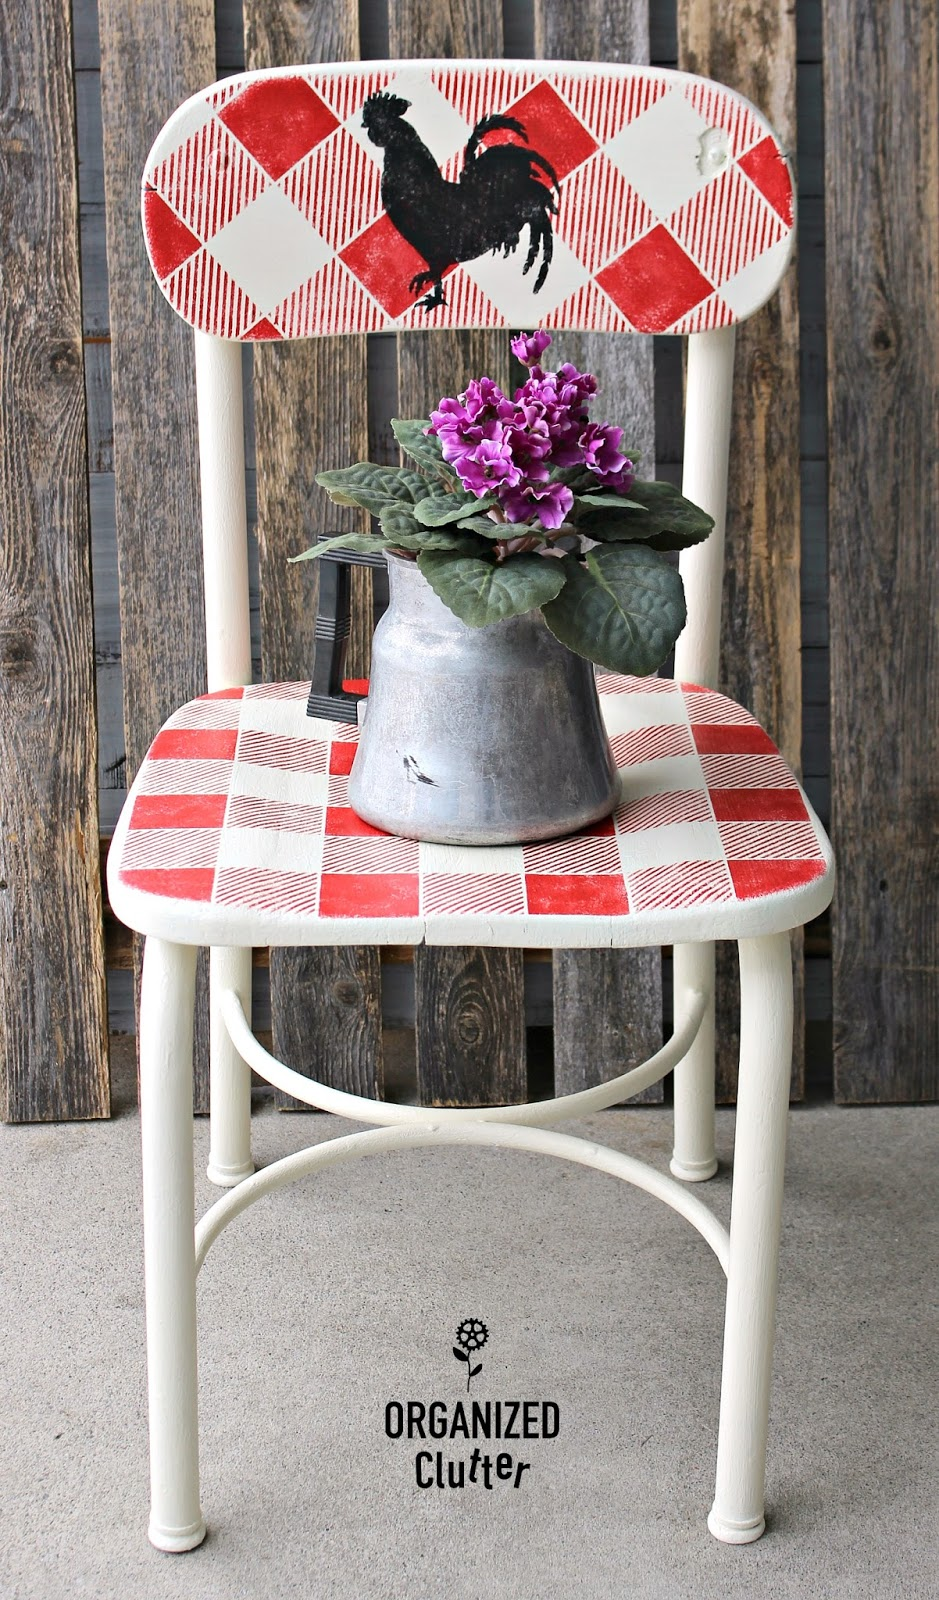 Buffalo checked farmhouse kitchen chair by Organized Clutter, featured on Funky Junk Interiors